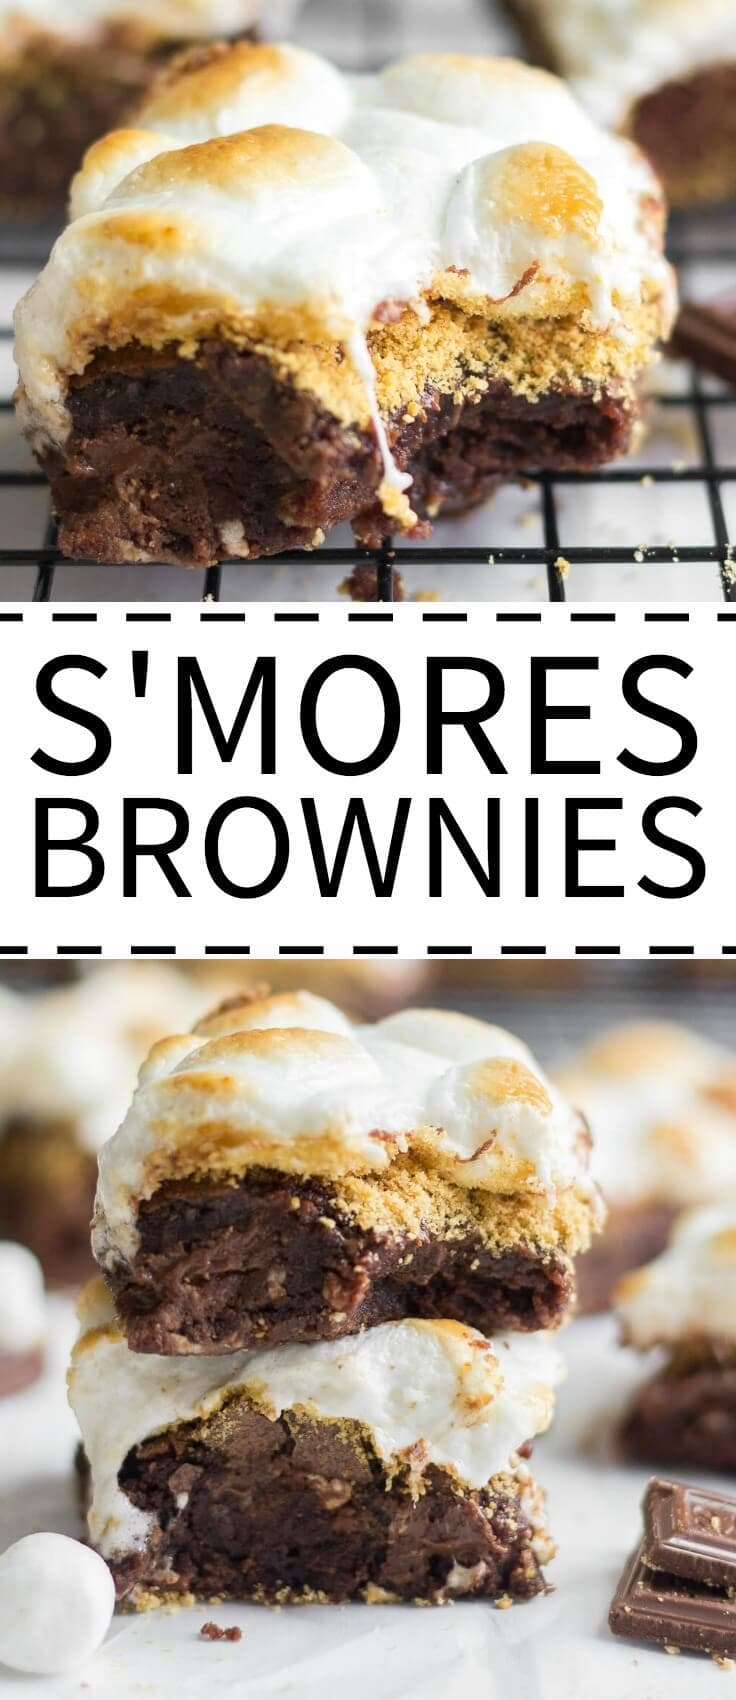 These chewy brownies are our best s'mores brownies recipe. Layered with Hershey's chocolate and graham cracker crumbs and topped with toasted marshmallows.